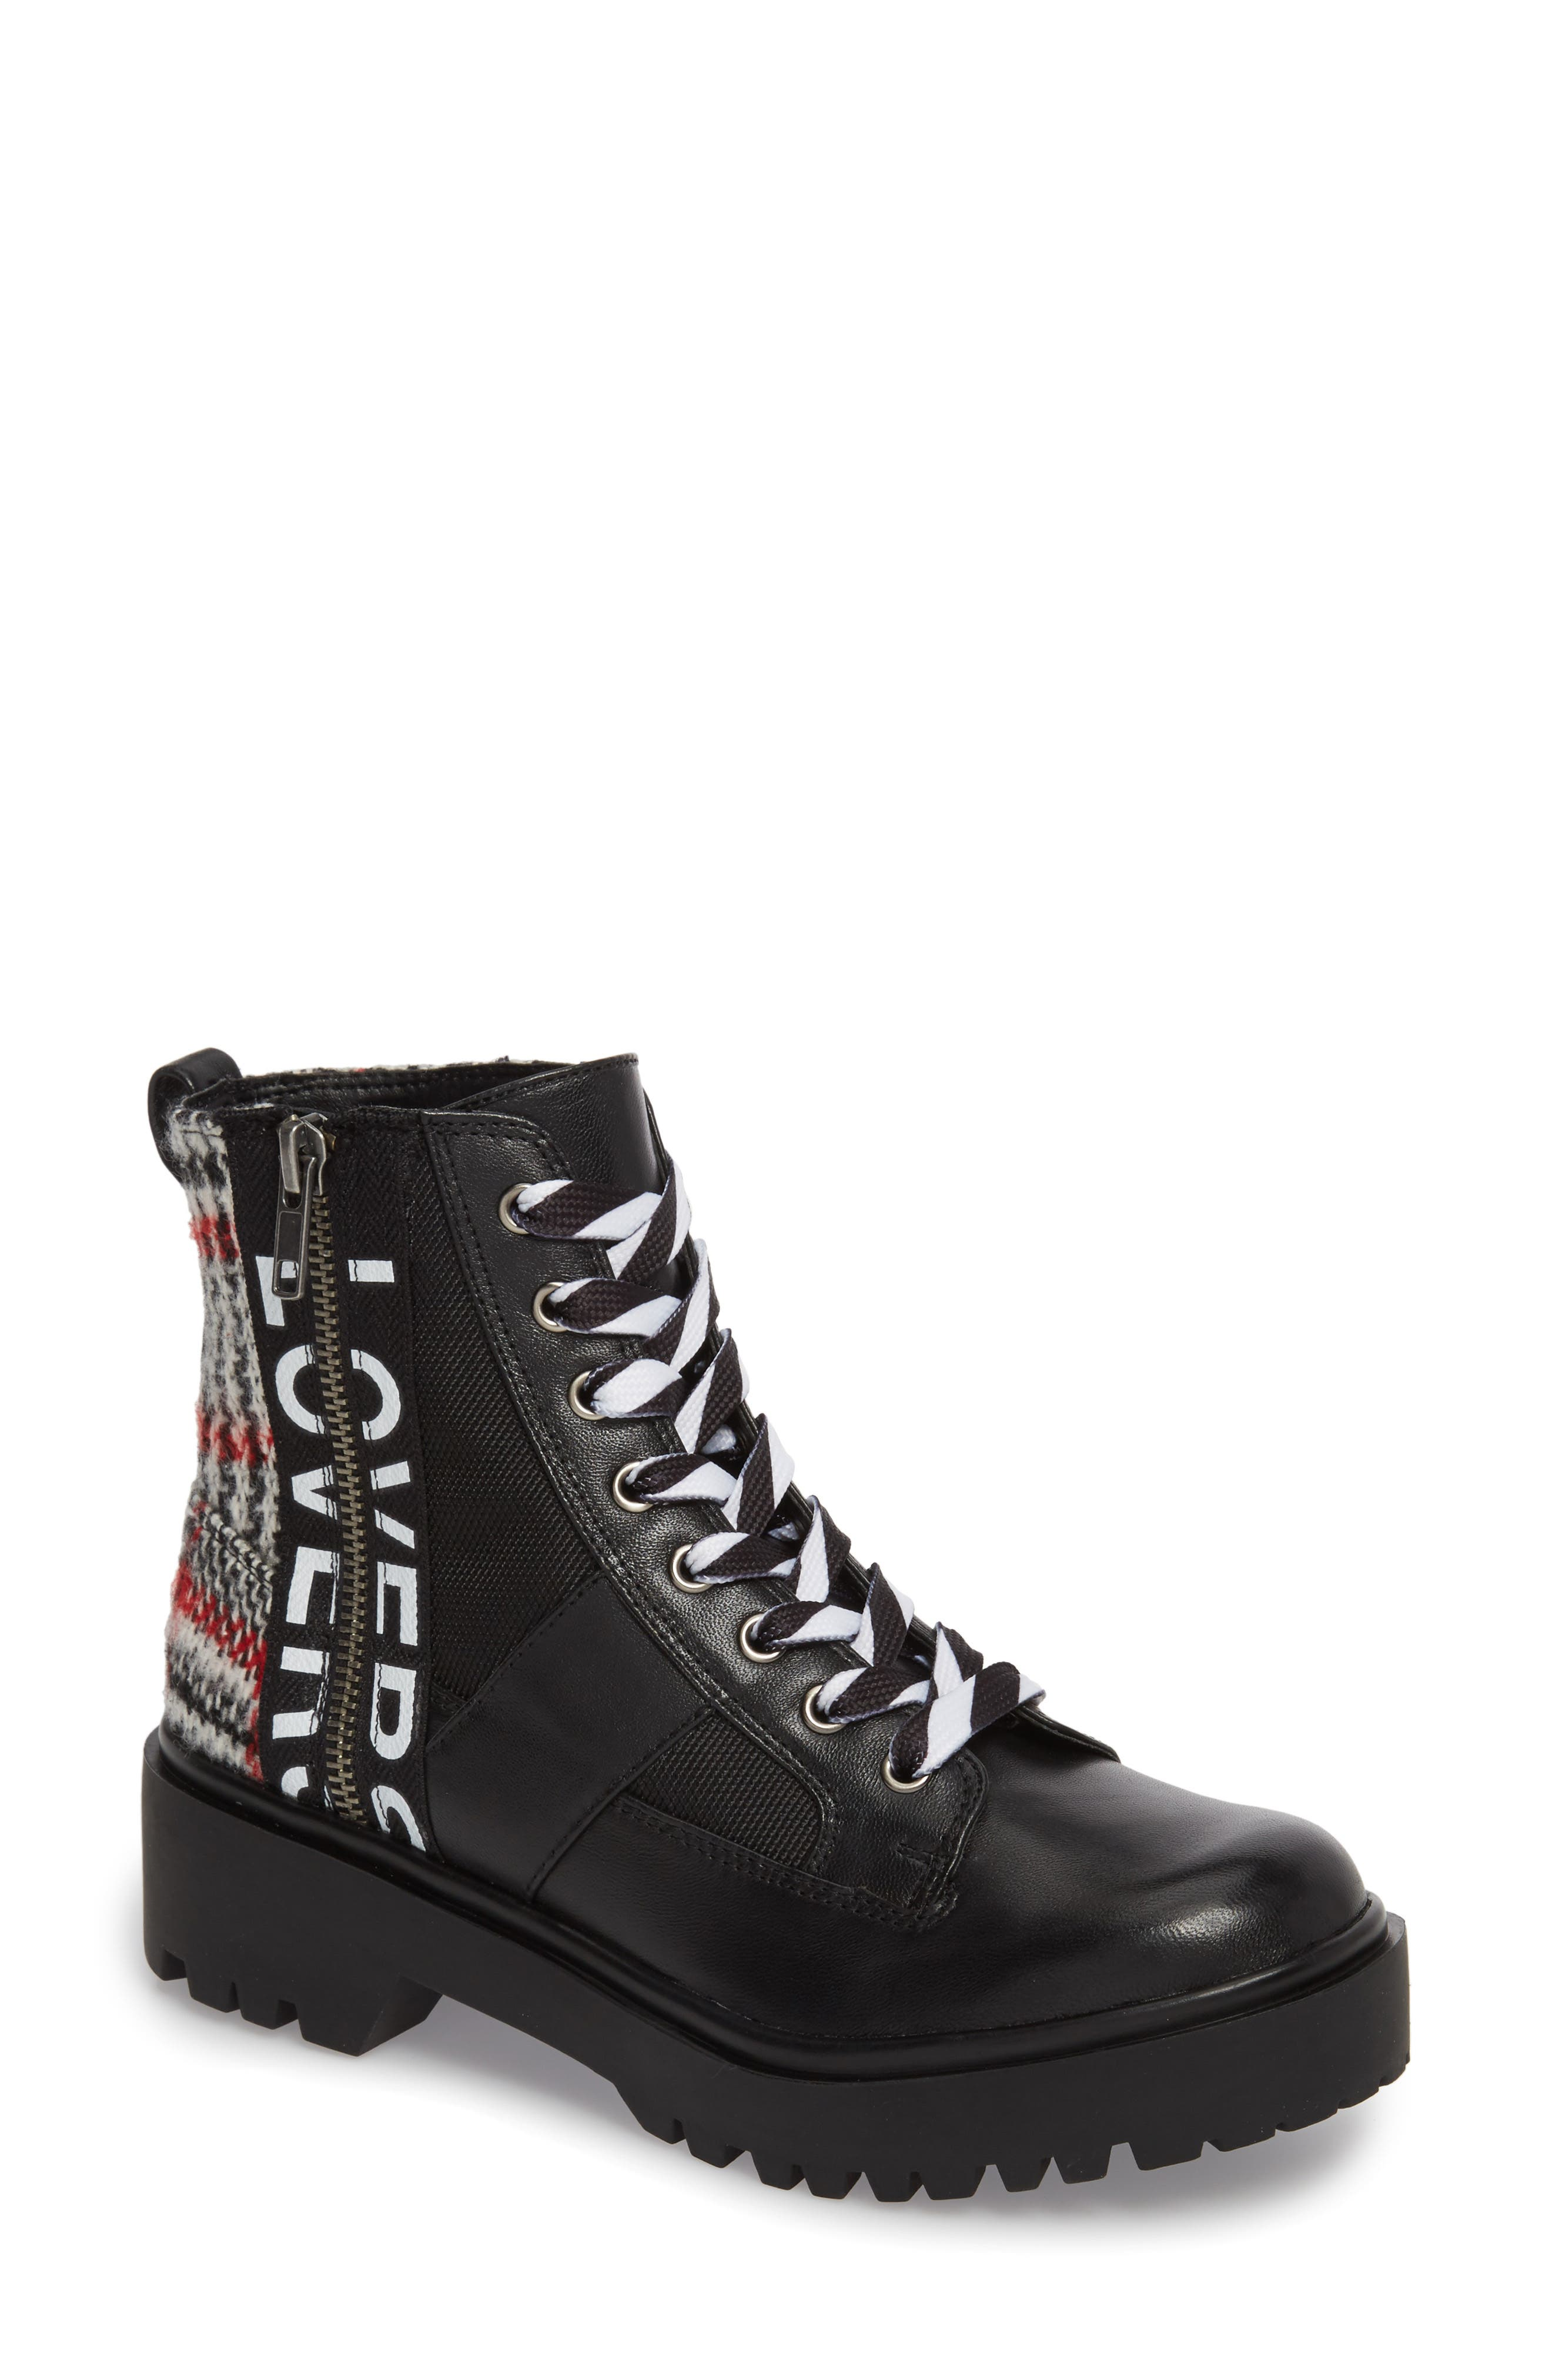 Lennox Combat Boot,                             Main thumbnail 1, color,                             Black Multi